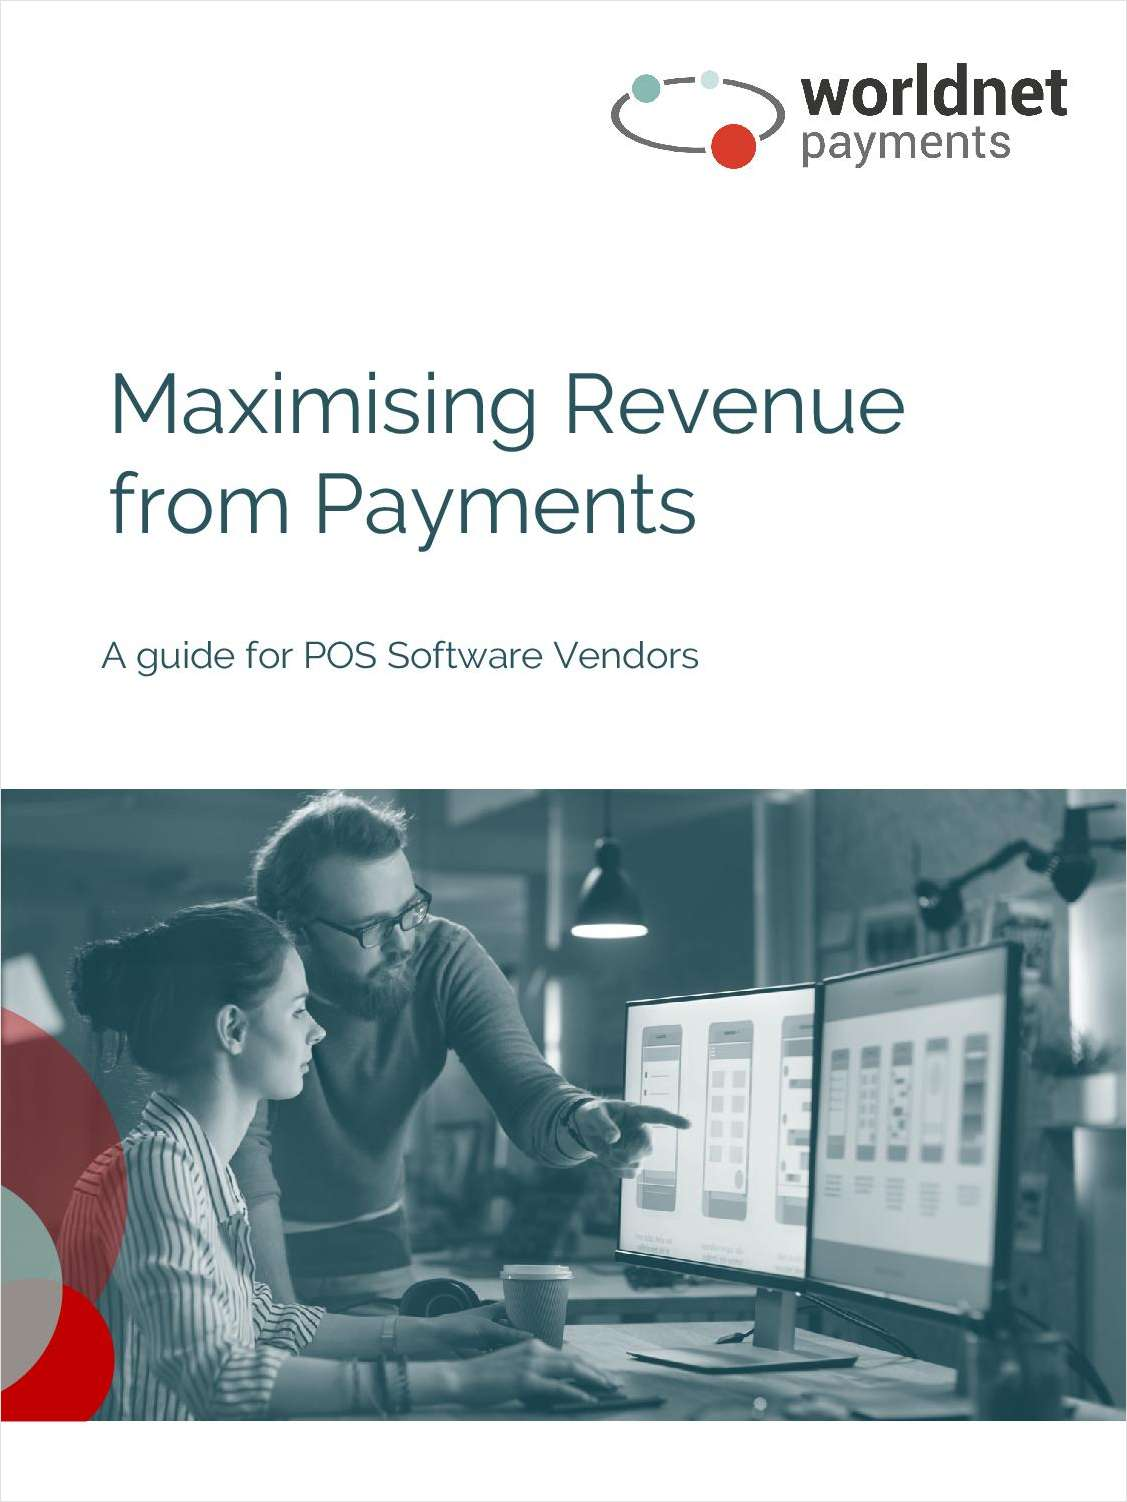 5 Ways to Maximize Revenue from Your POS Software with Payments